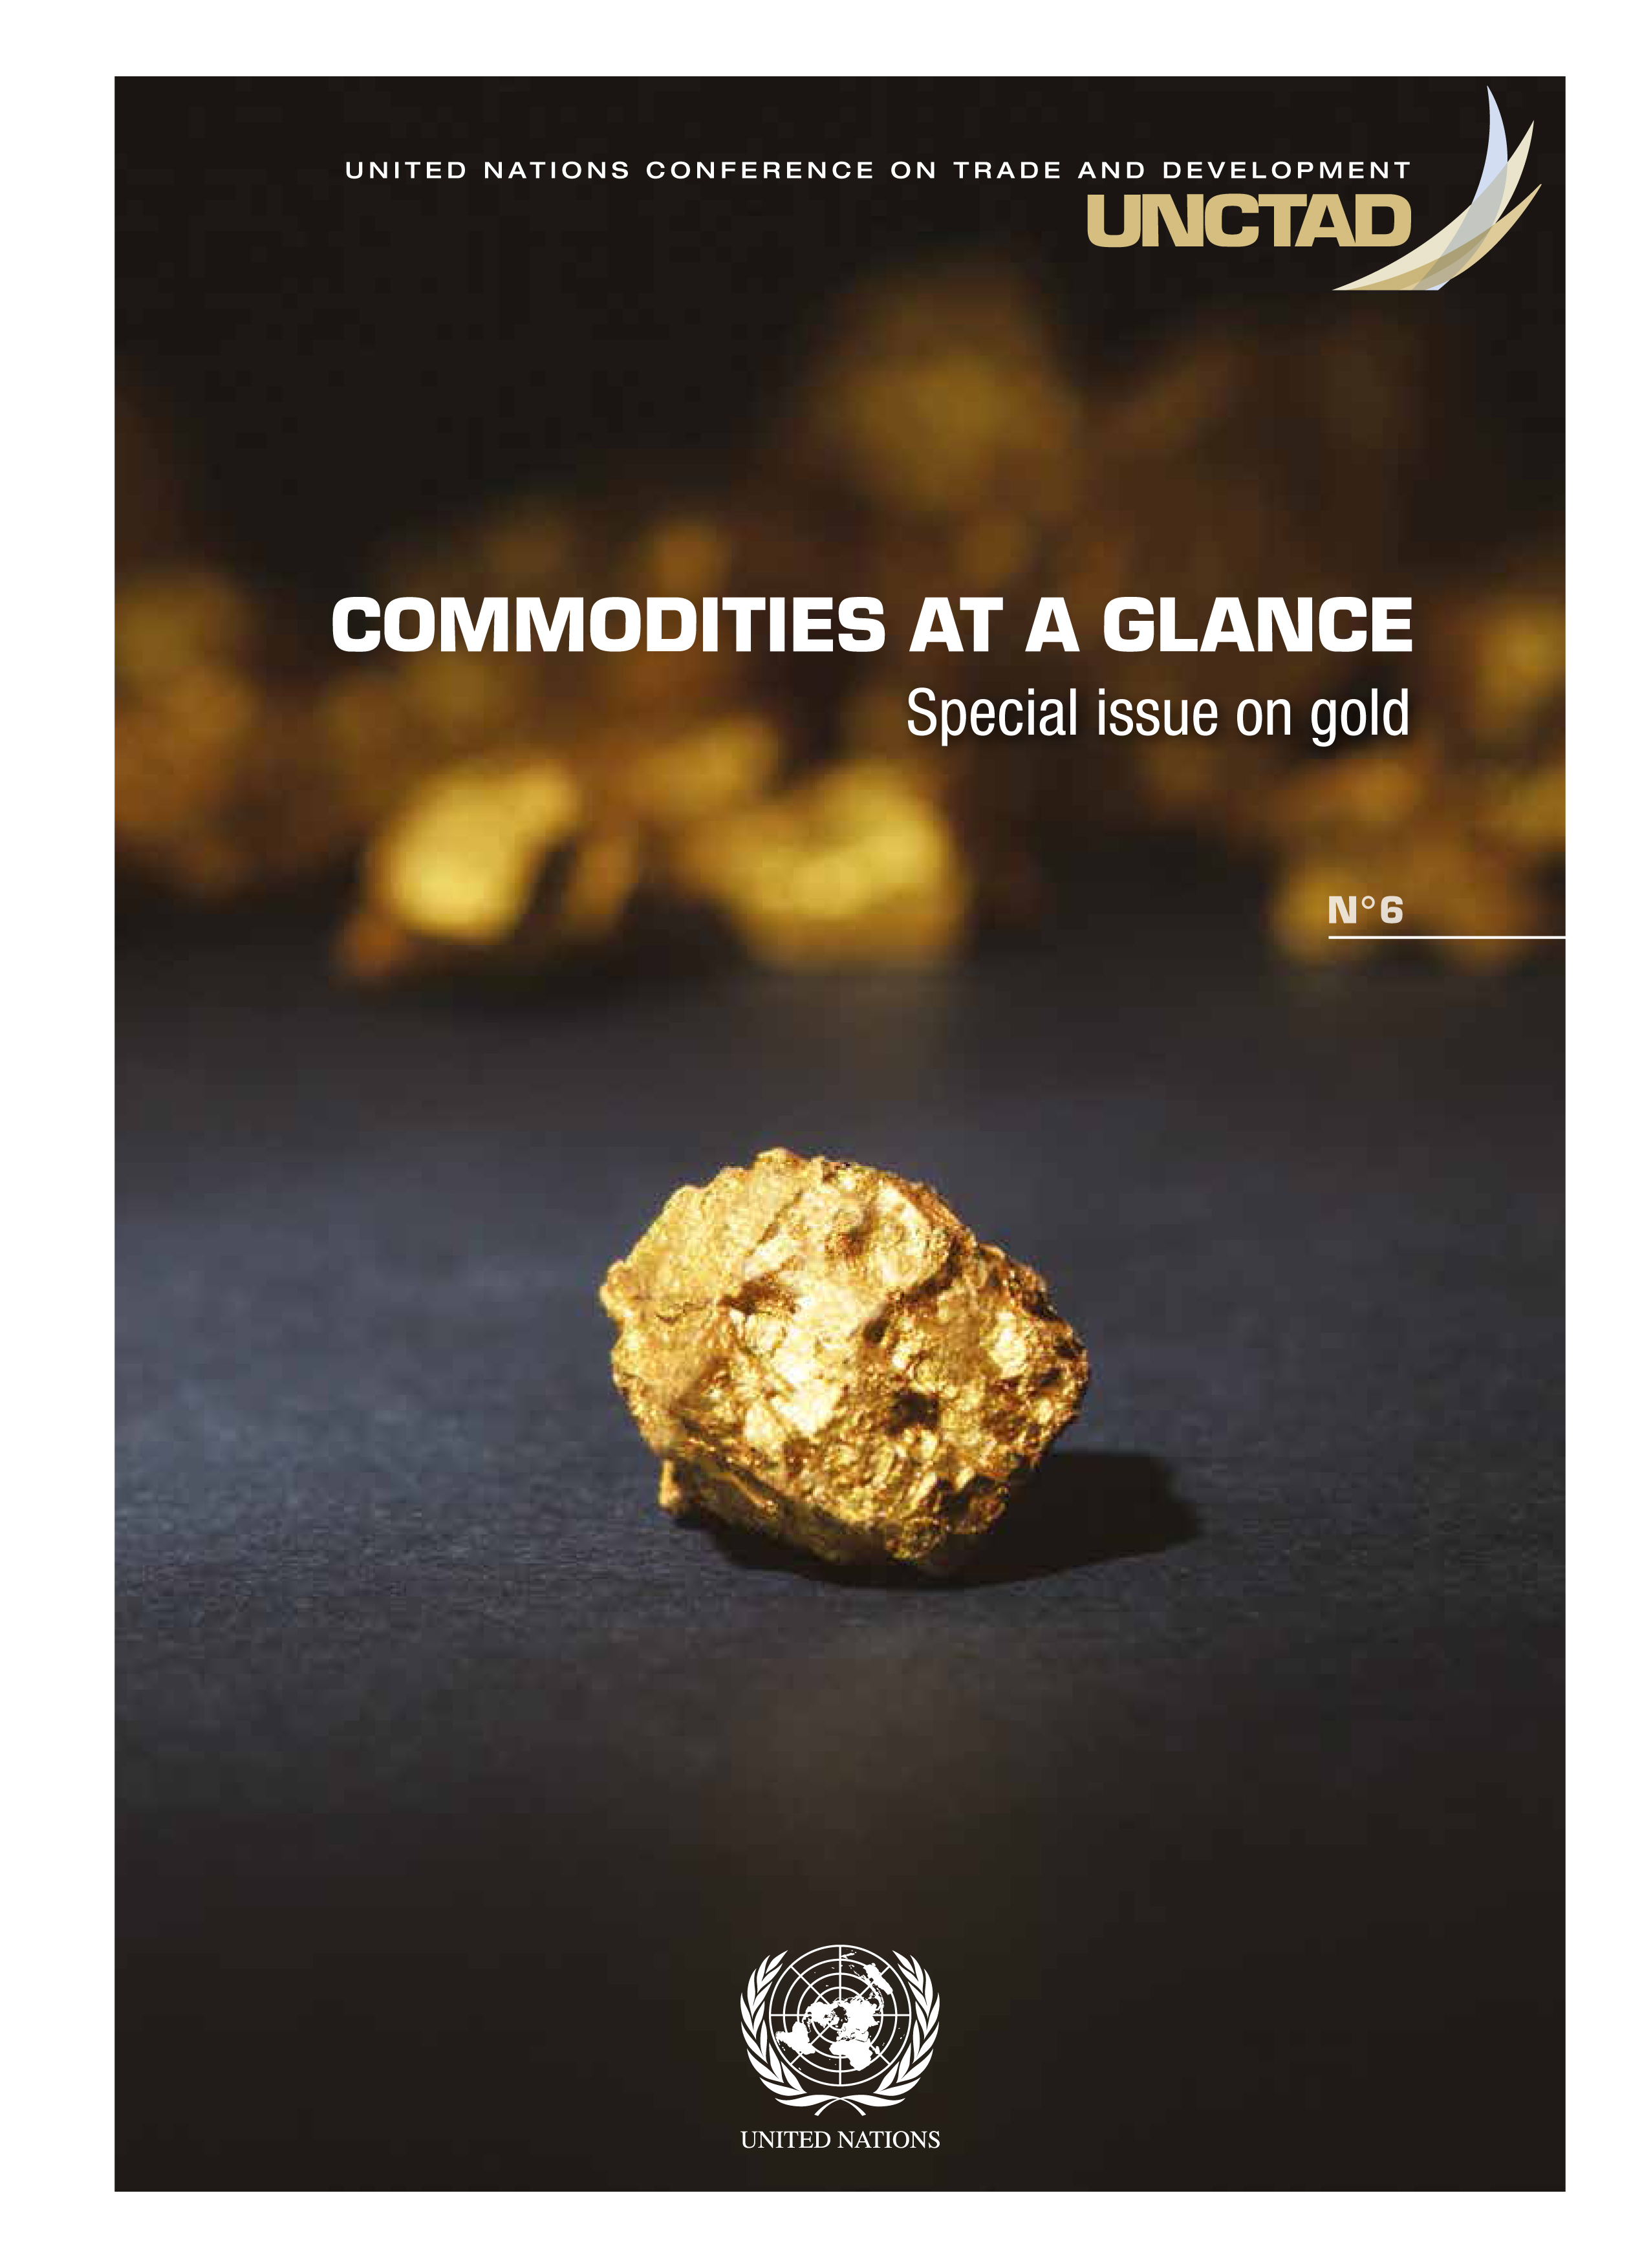 COMMOD AT A GLANCE - GOLD